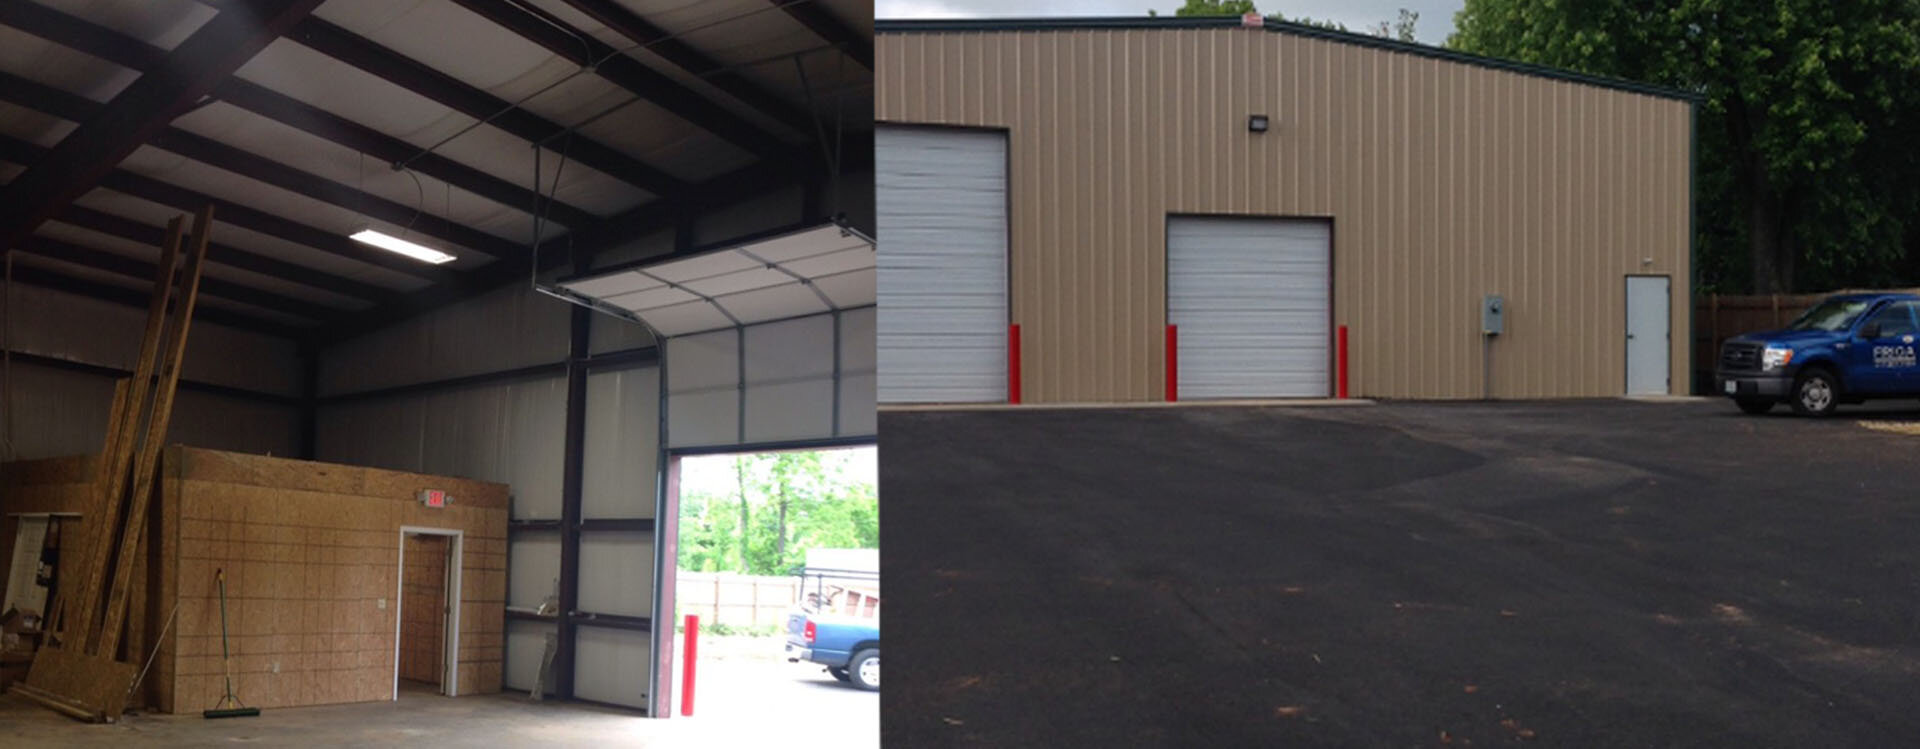 Commercial Storage buildings by Friga INC